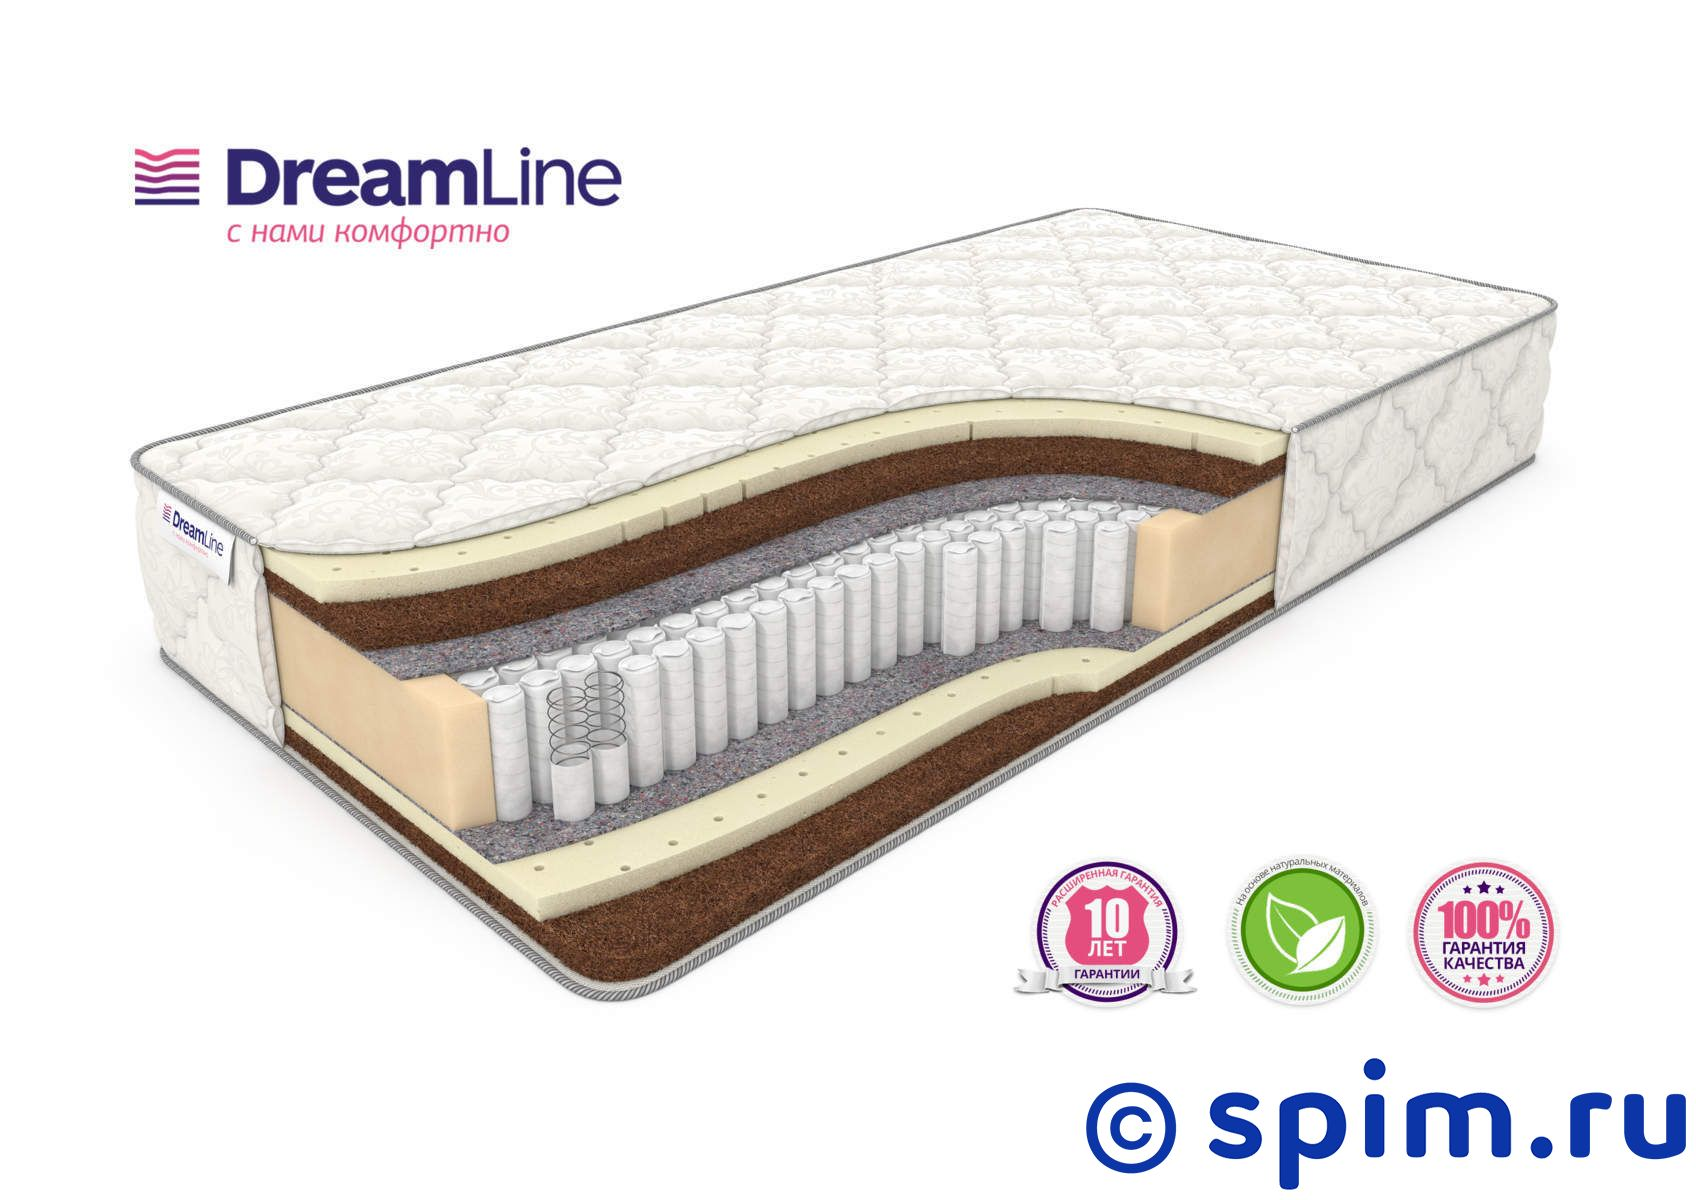 Матрас DreamLine Prime Mix S1000 120х190 см